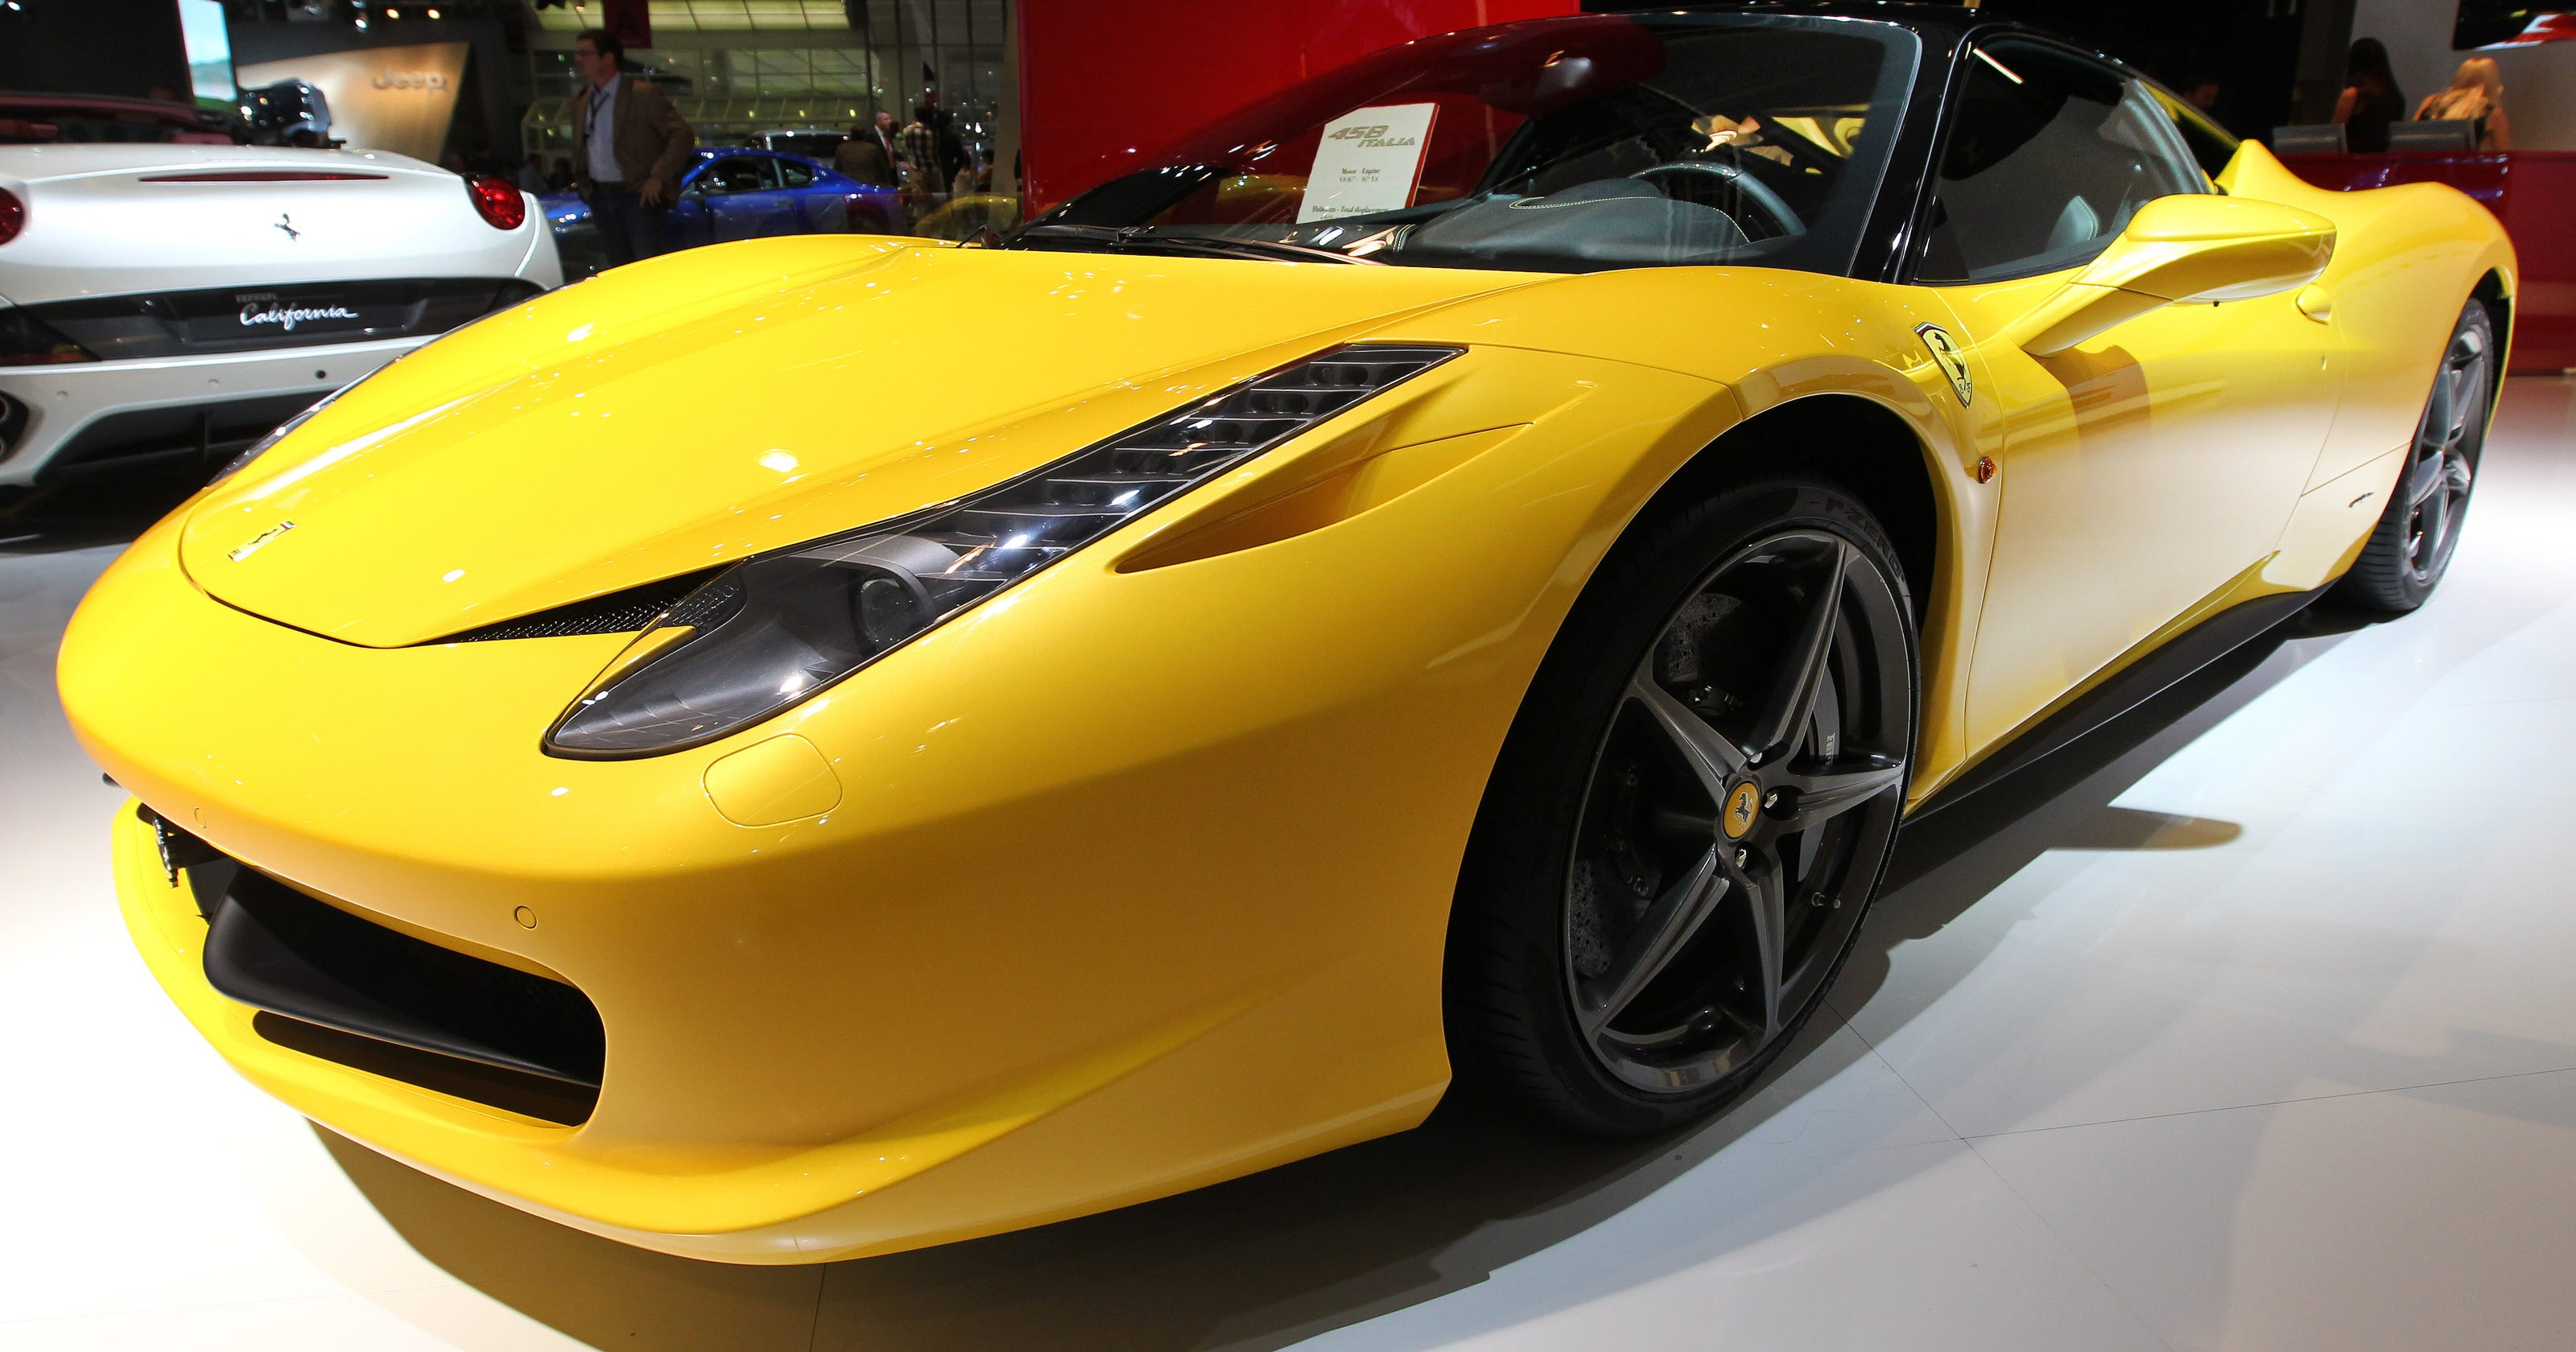 valet gave 300 000 ferrari to wrong person lawsuit says